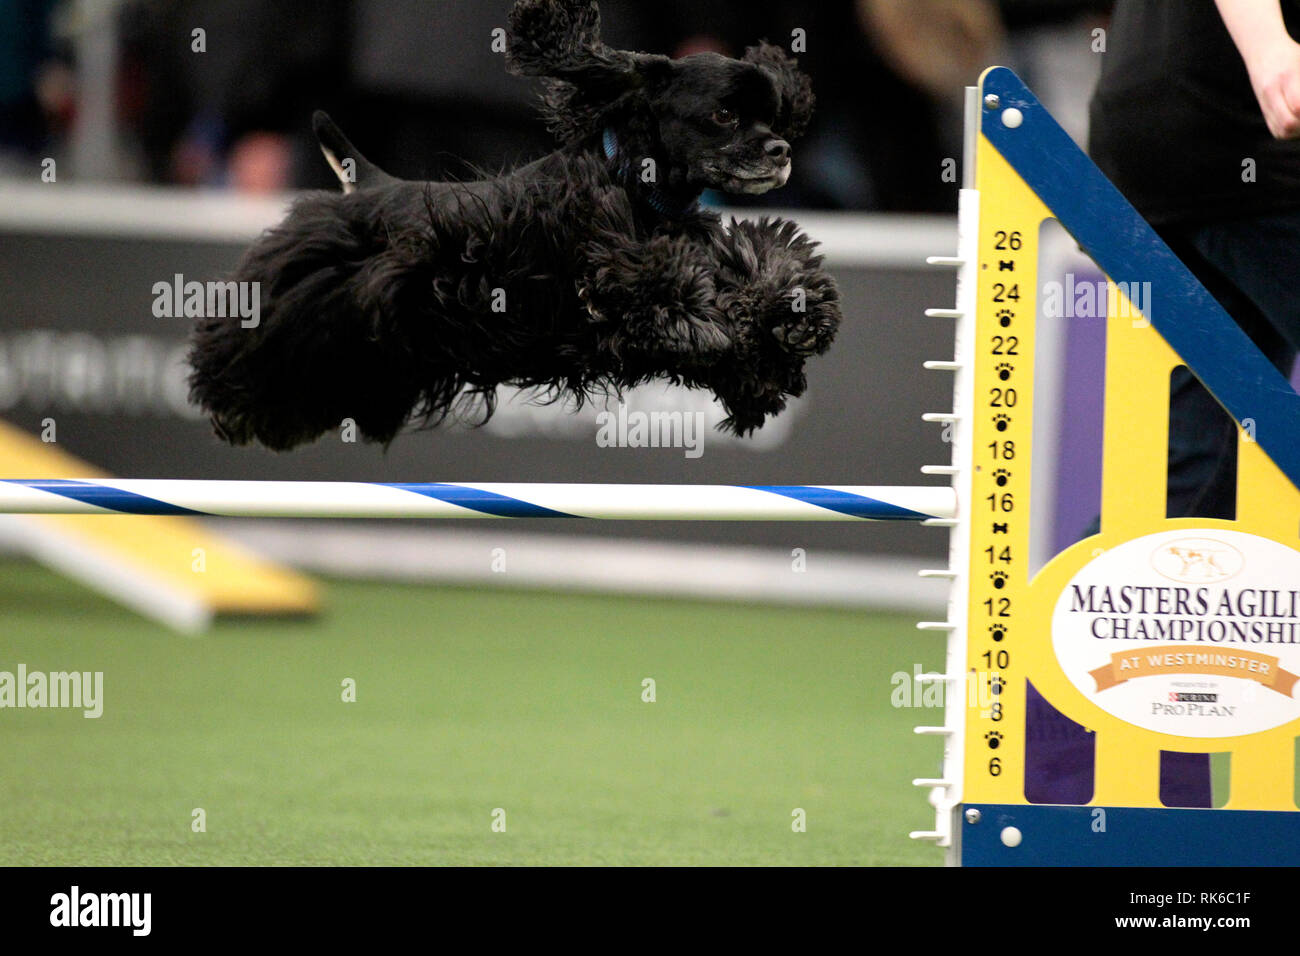 New York, USA. 09th Feb, 2019. New York, USA. 09th Feb, 2019. Westminster Dog Show - Cody, a Cocker Spaniel, competing in the preliminaries of the Westminster Kennel Club's Master's Agility Championship. Credit: Adam Stoltman/Alamy Live News Stock Photo